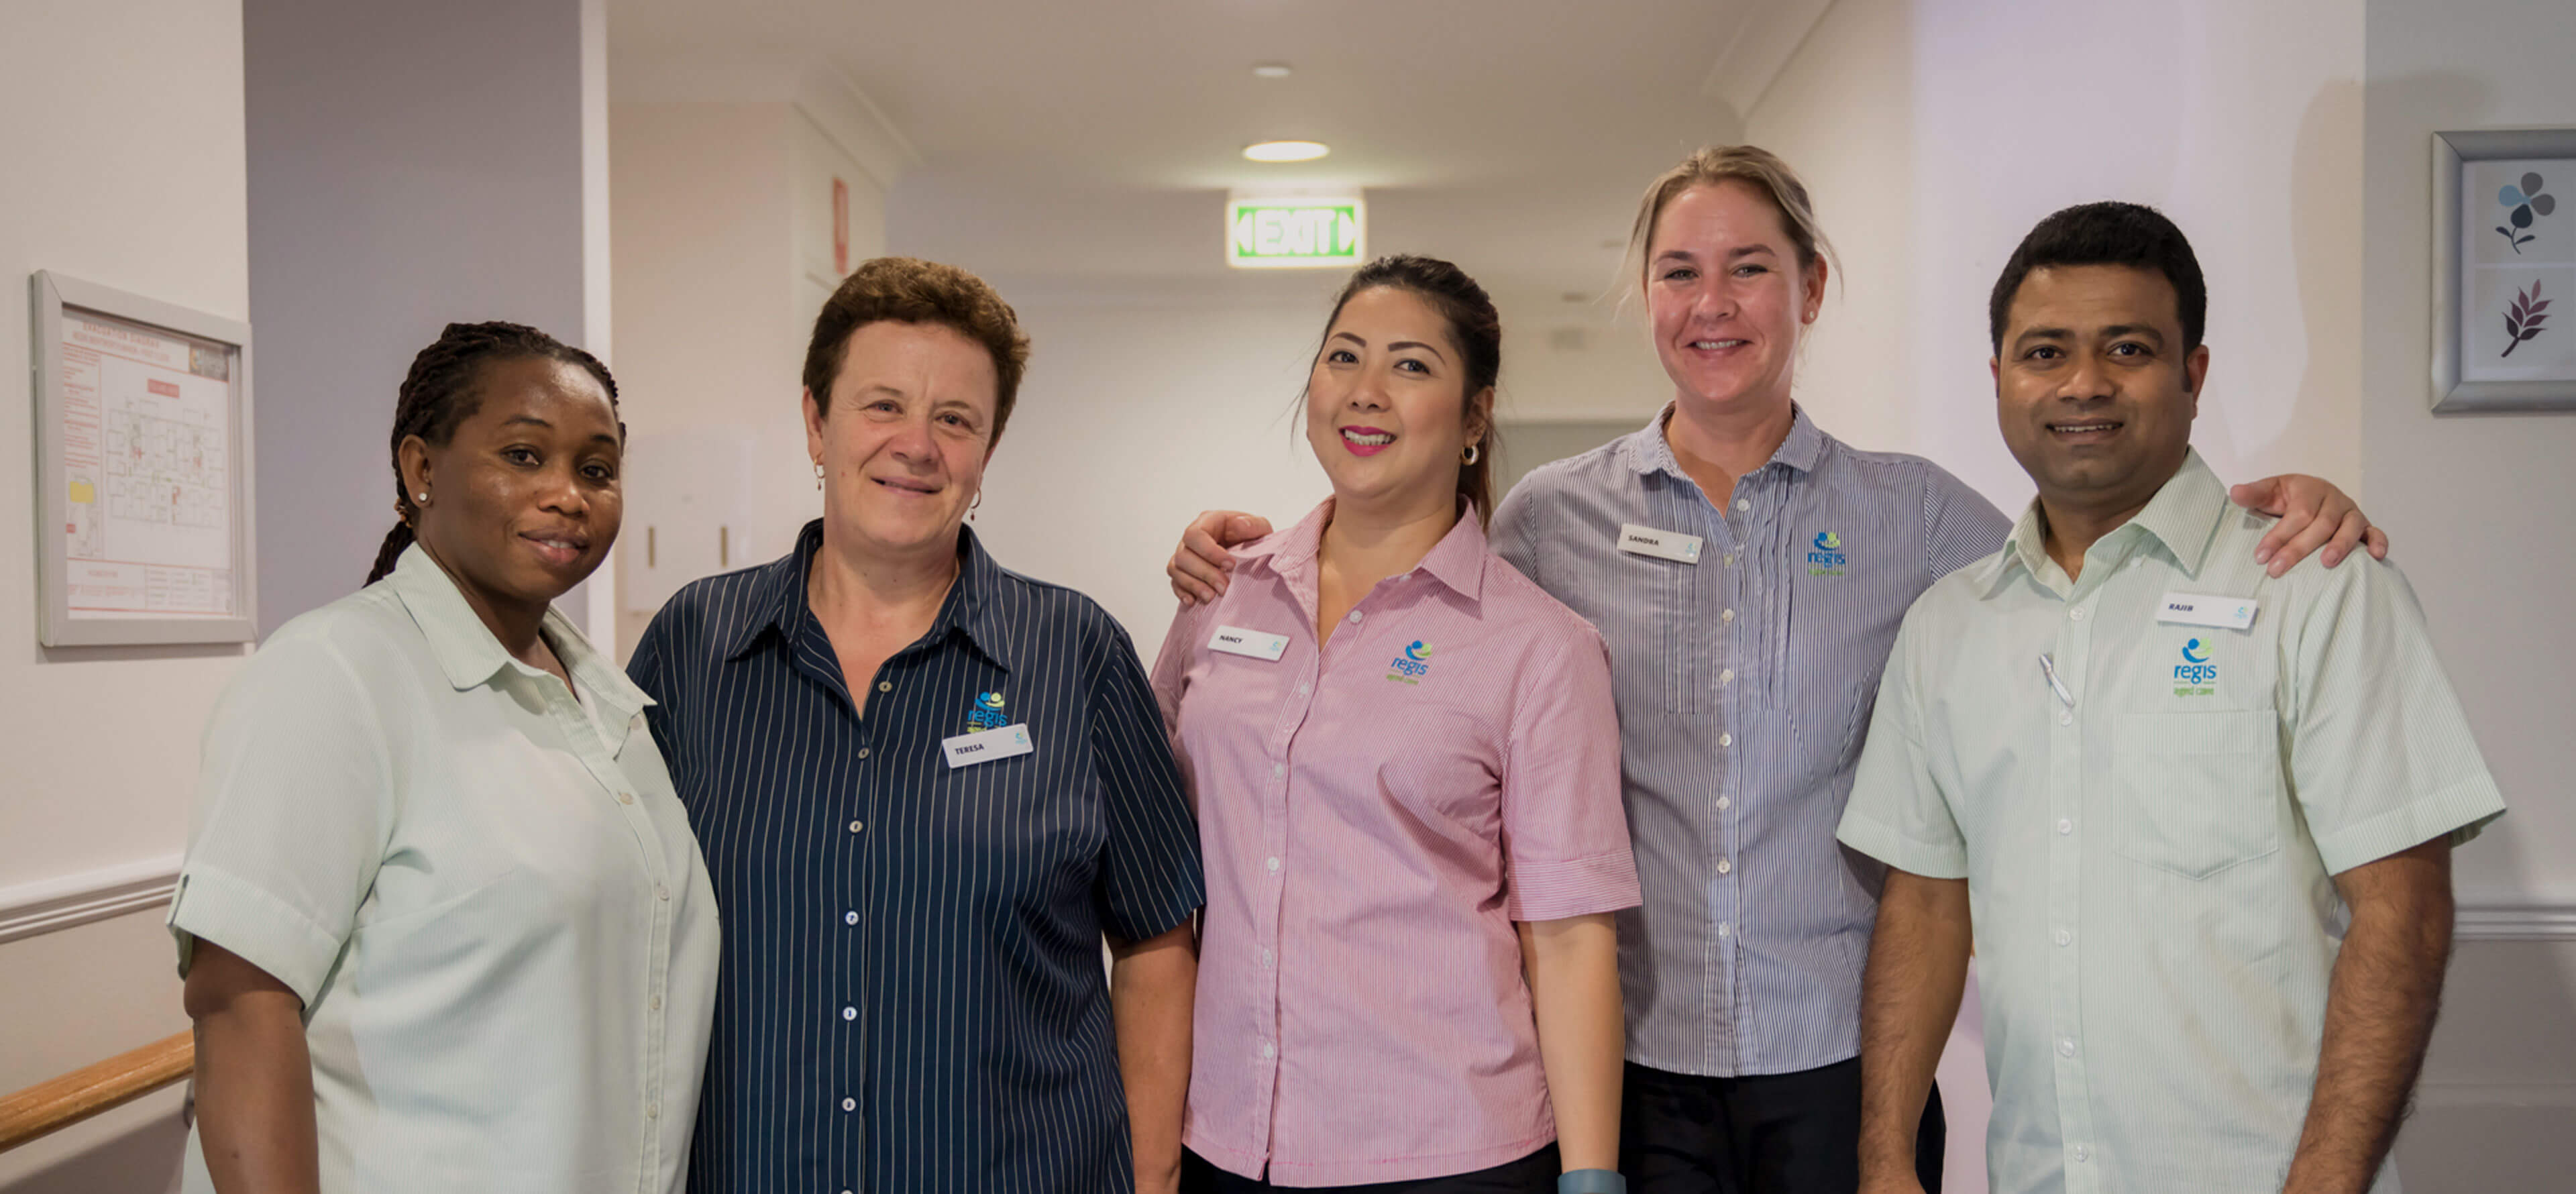 Careers | Regis Aged Care | Aged Care Jobs